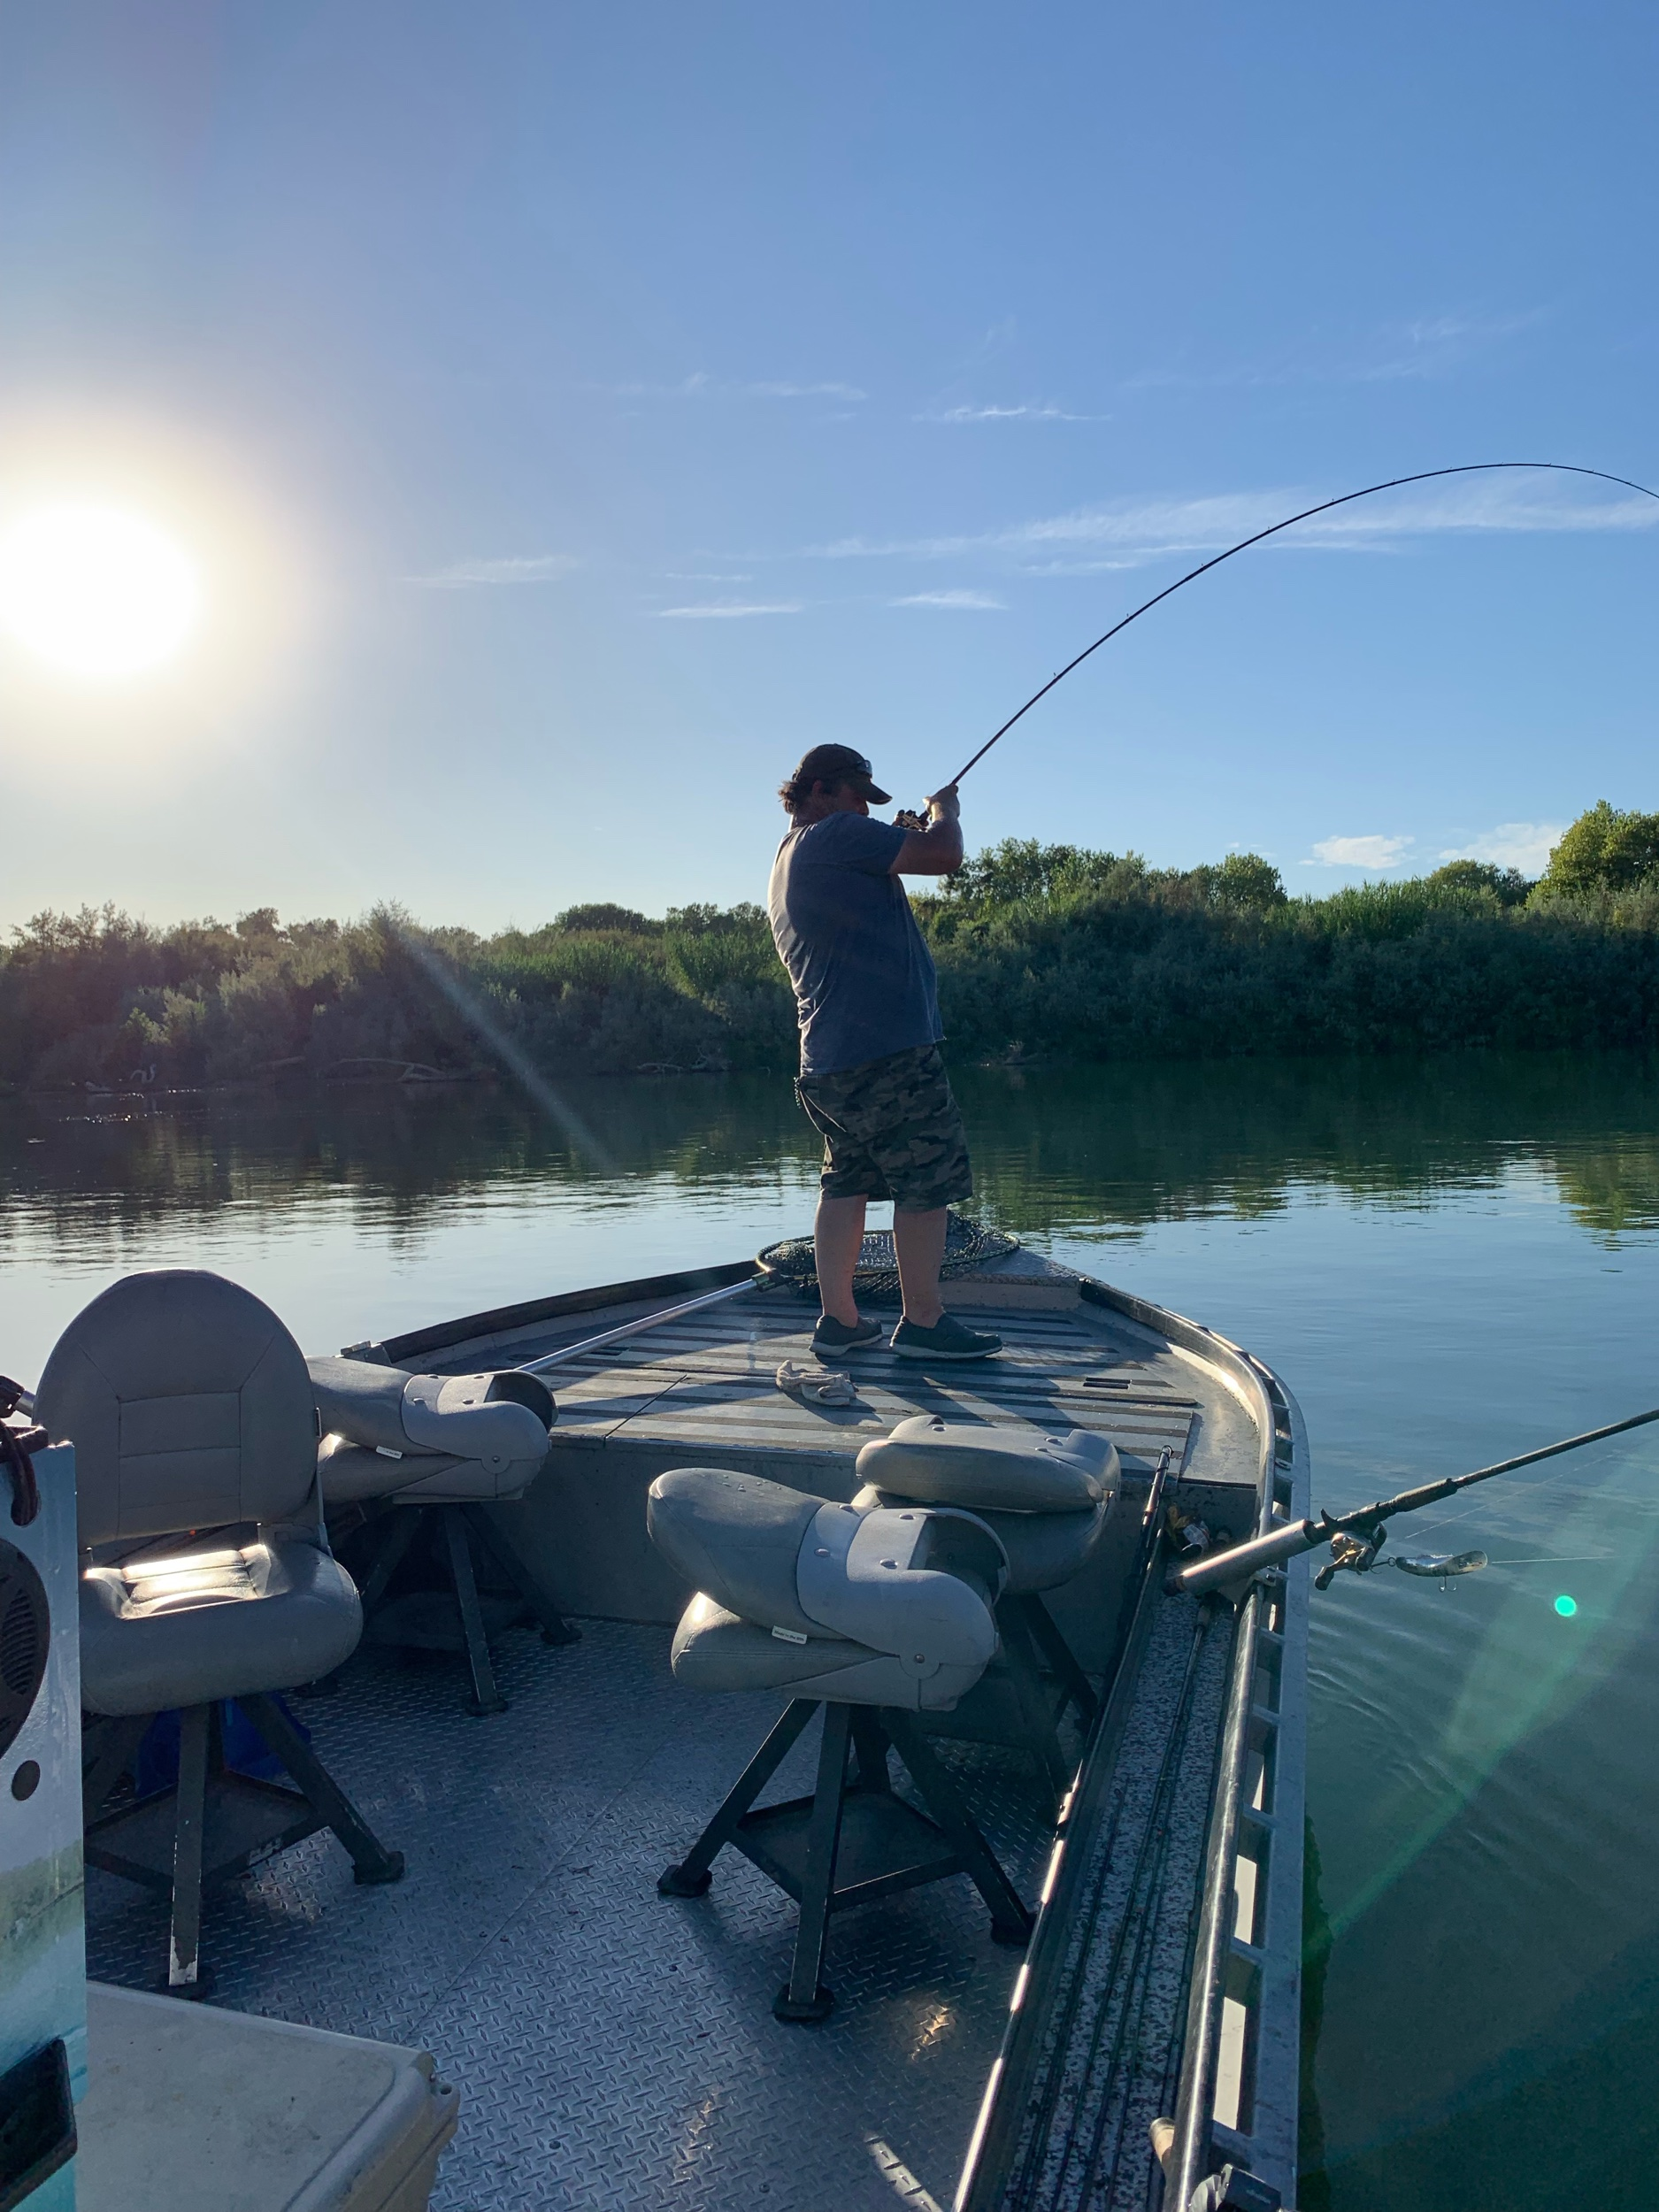 This guest of Mike's Guide Service battles a 27 pound king salmon he caught while back bouncing cured salmon roe on the Sacramento River at Woodson Bridge. His Phenix Rod Co. 9.5ft casting rod is bent over on a afternoon salmon fishing trip on September 4, 2019.